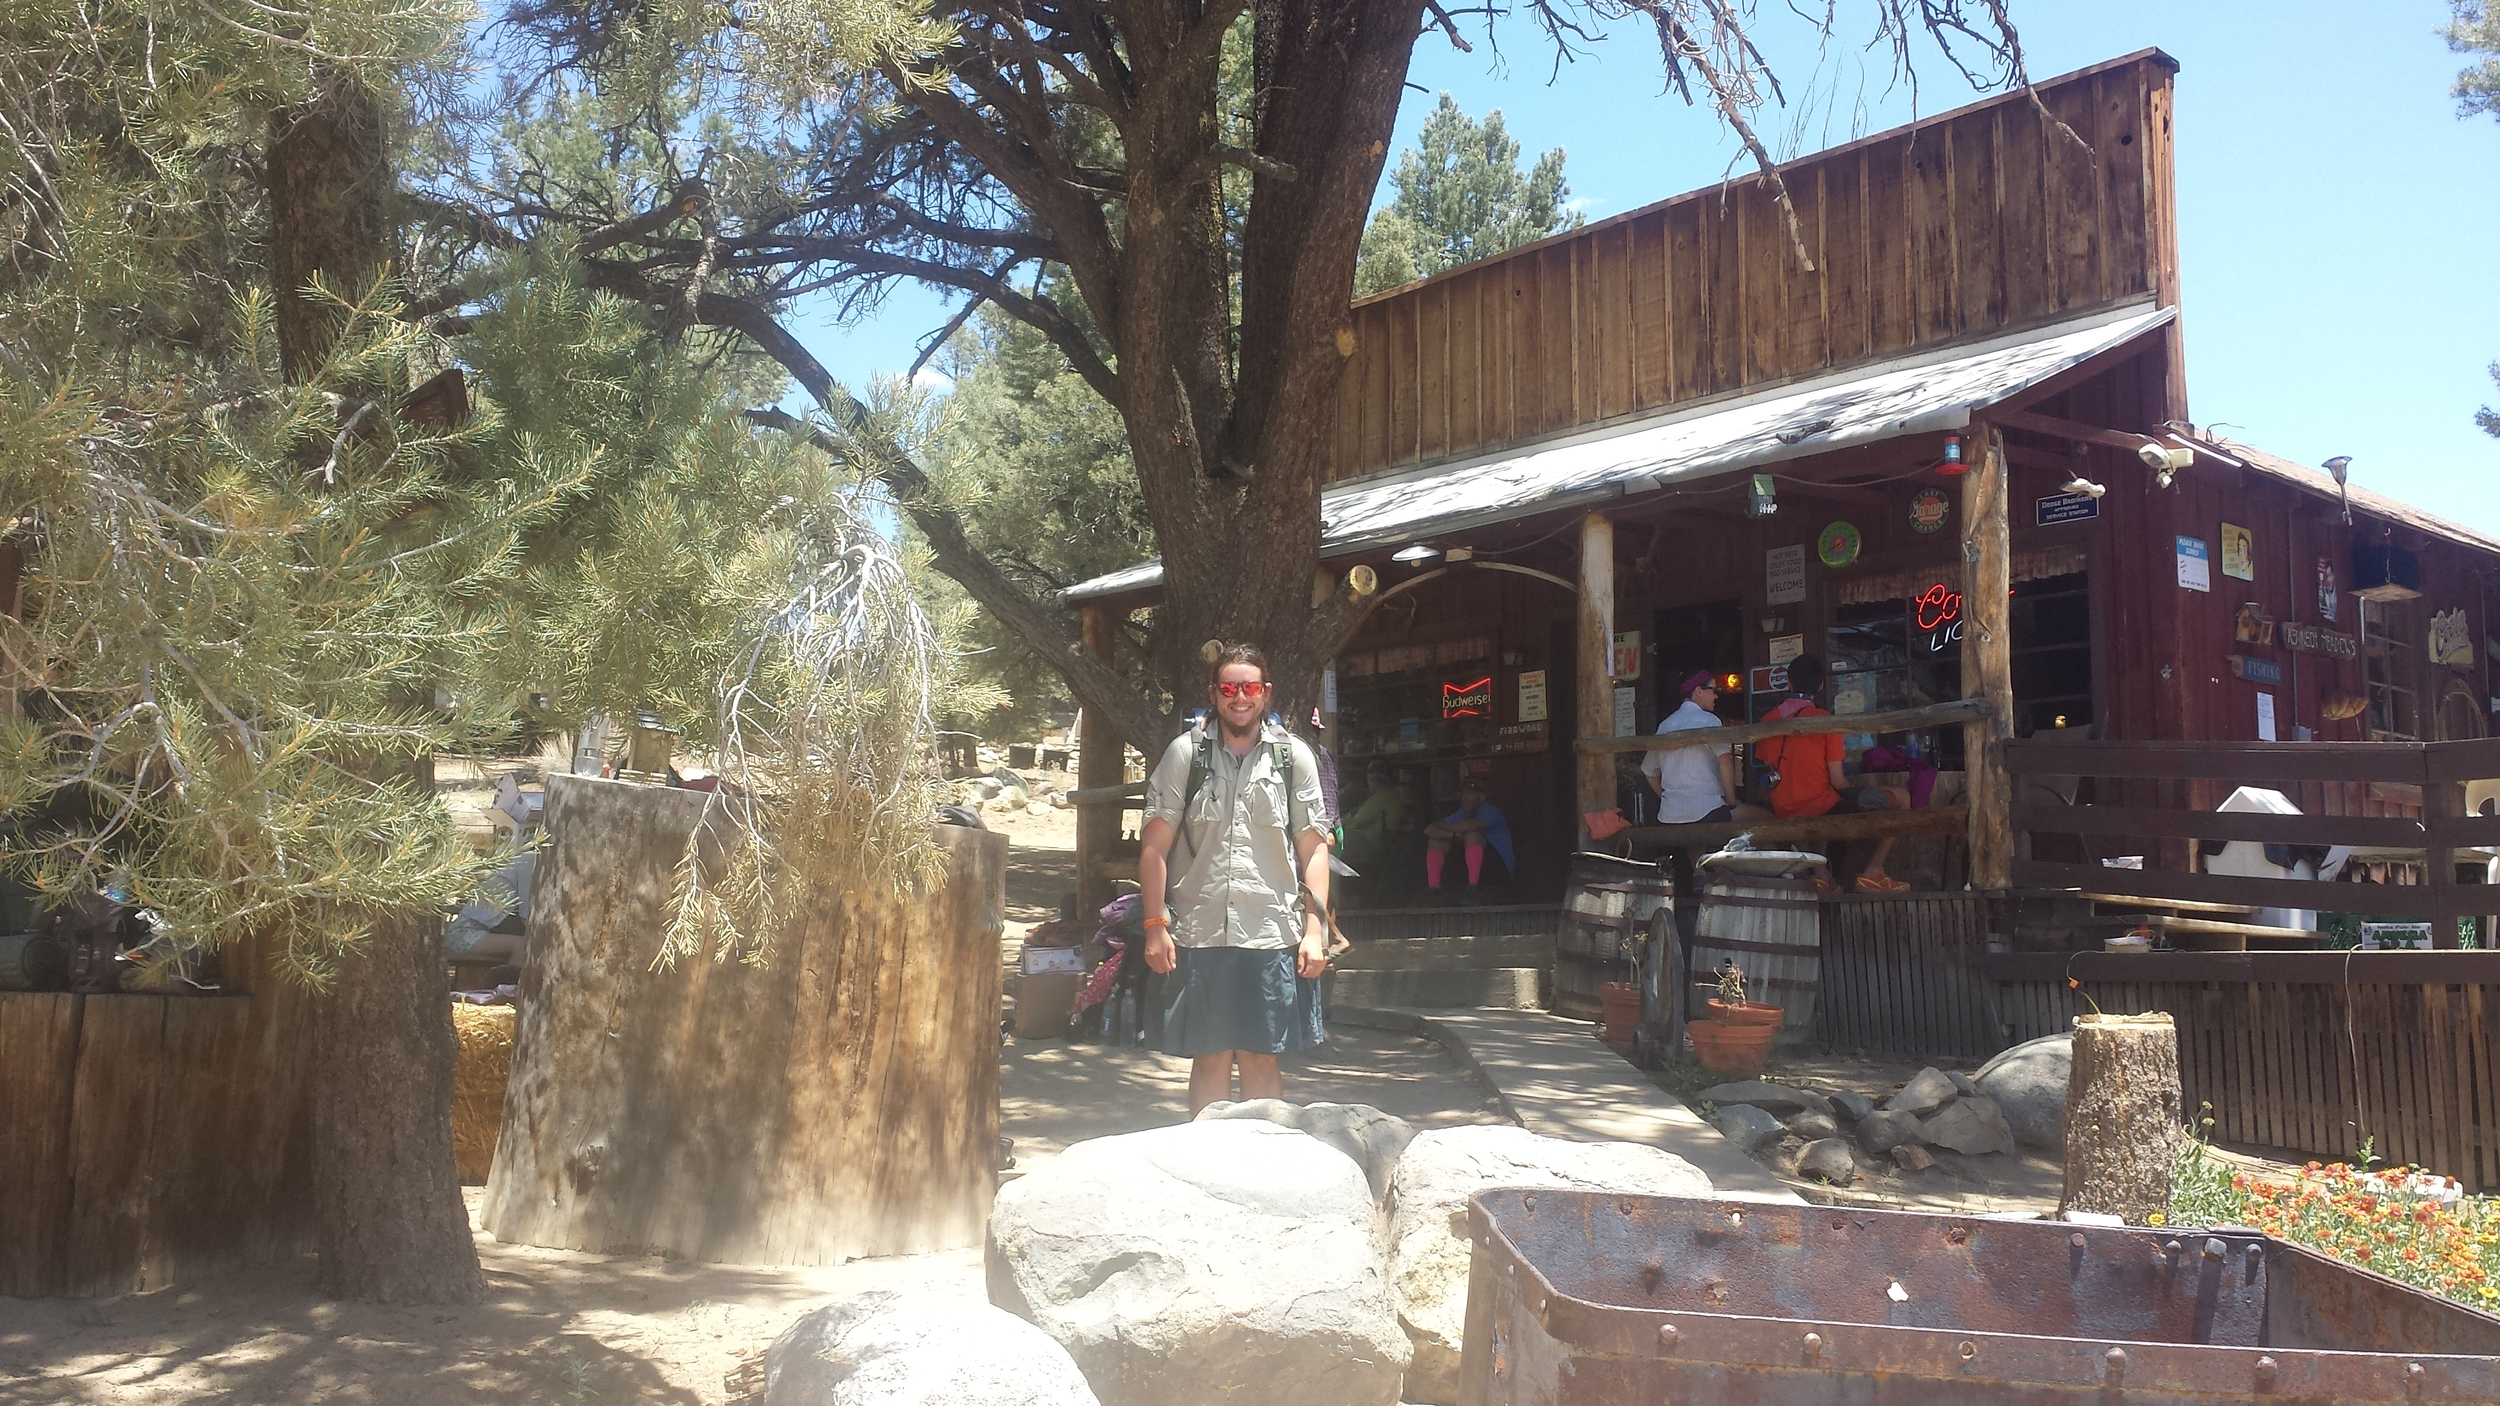 kennedy meadows general store with Far Out